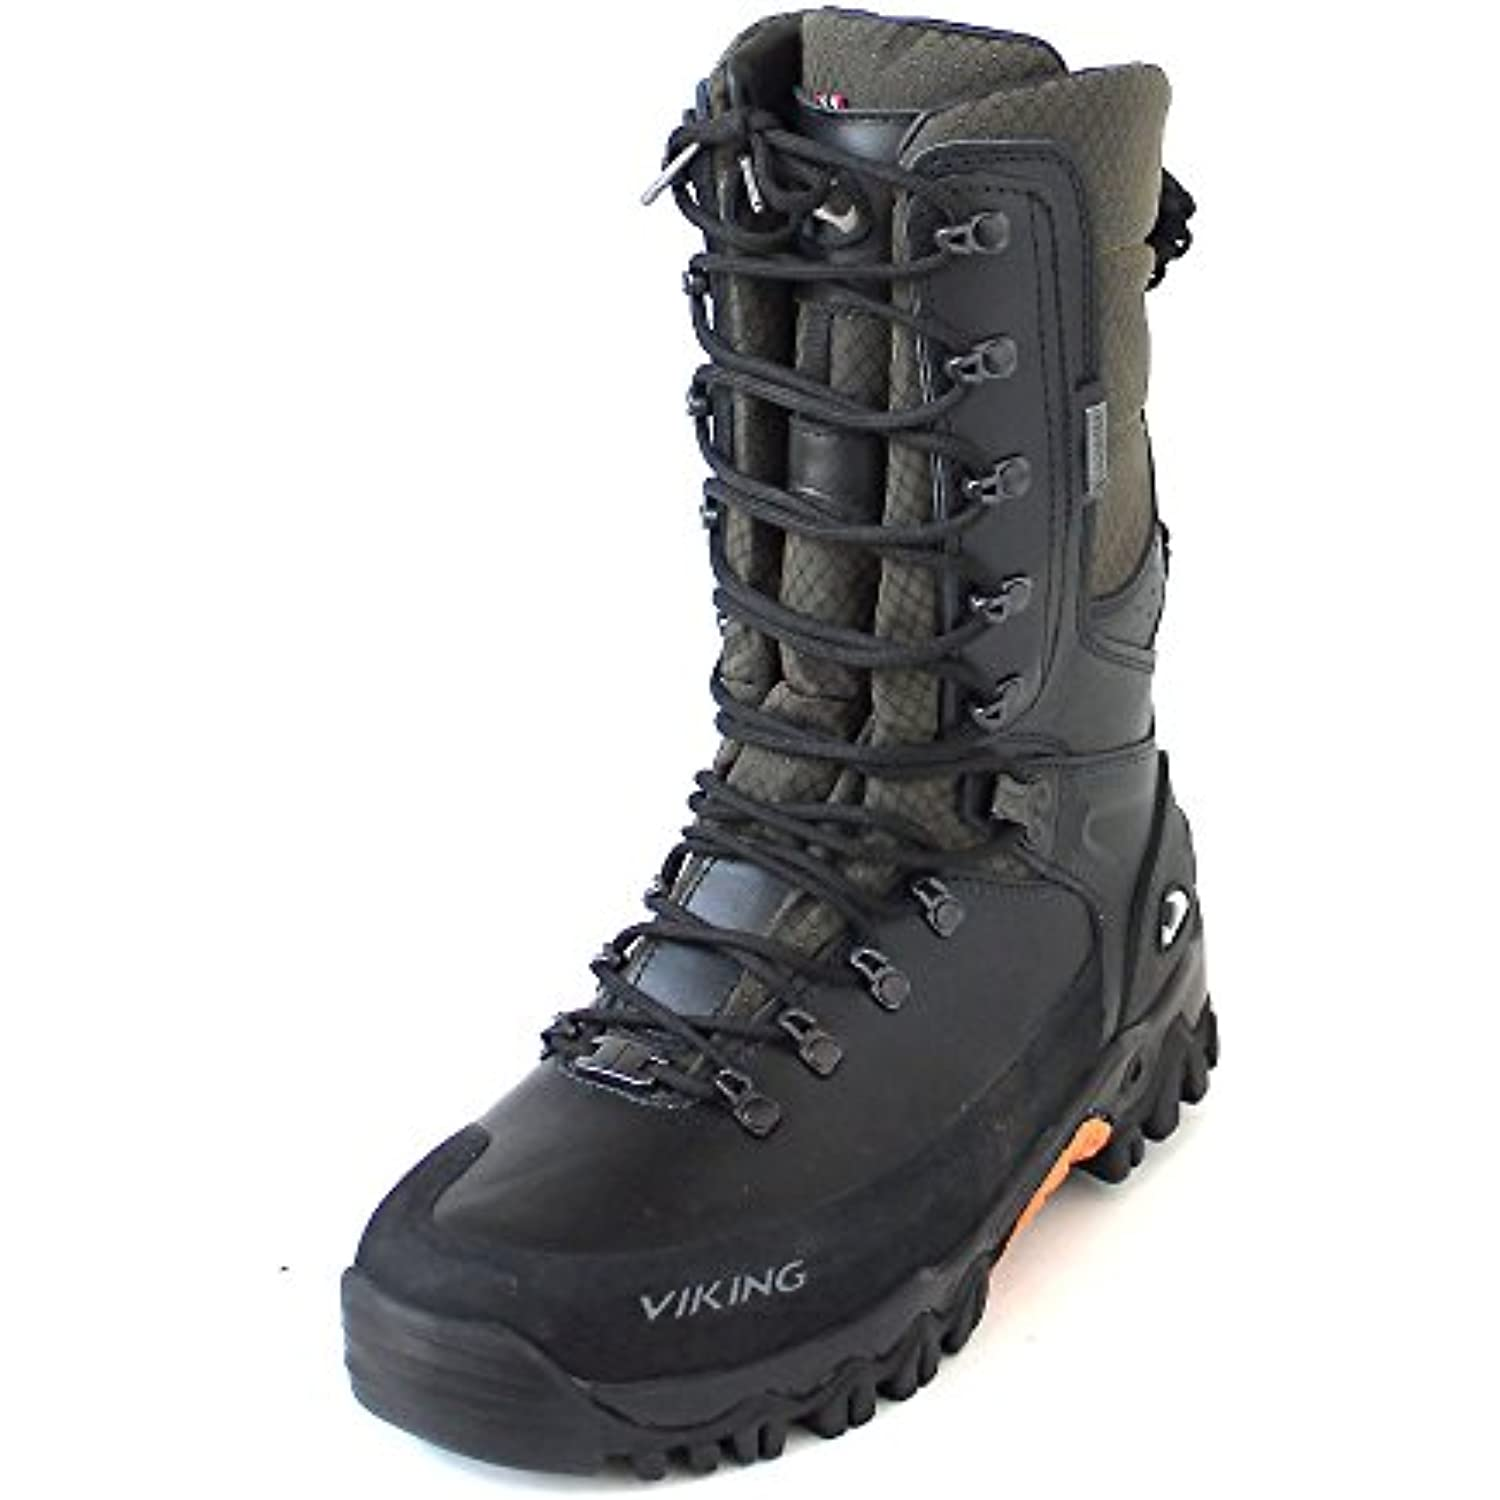 Viking Hunter Delux GTX, B073WHF75Z Chaussons Souples Mixte Adulte - B073WHF75Z GTX, - 1aeb23